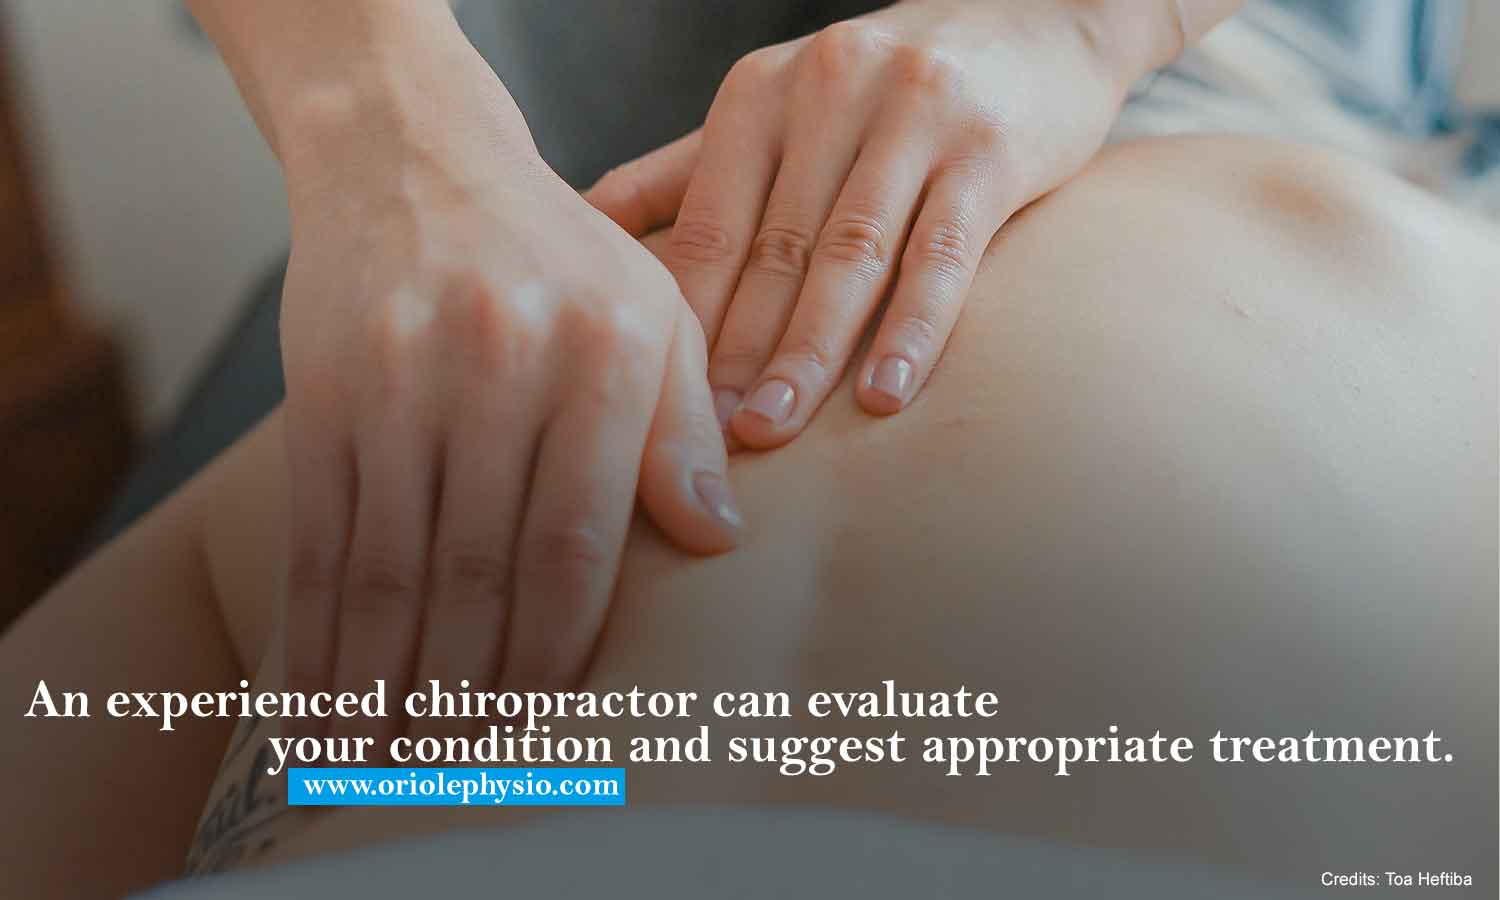 An experienced chiropractor can evaluate your condition and suggest appropriate treatment.